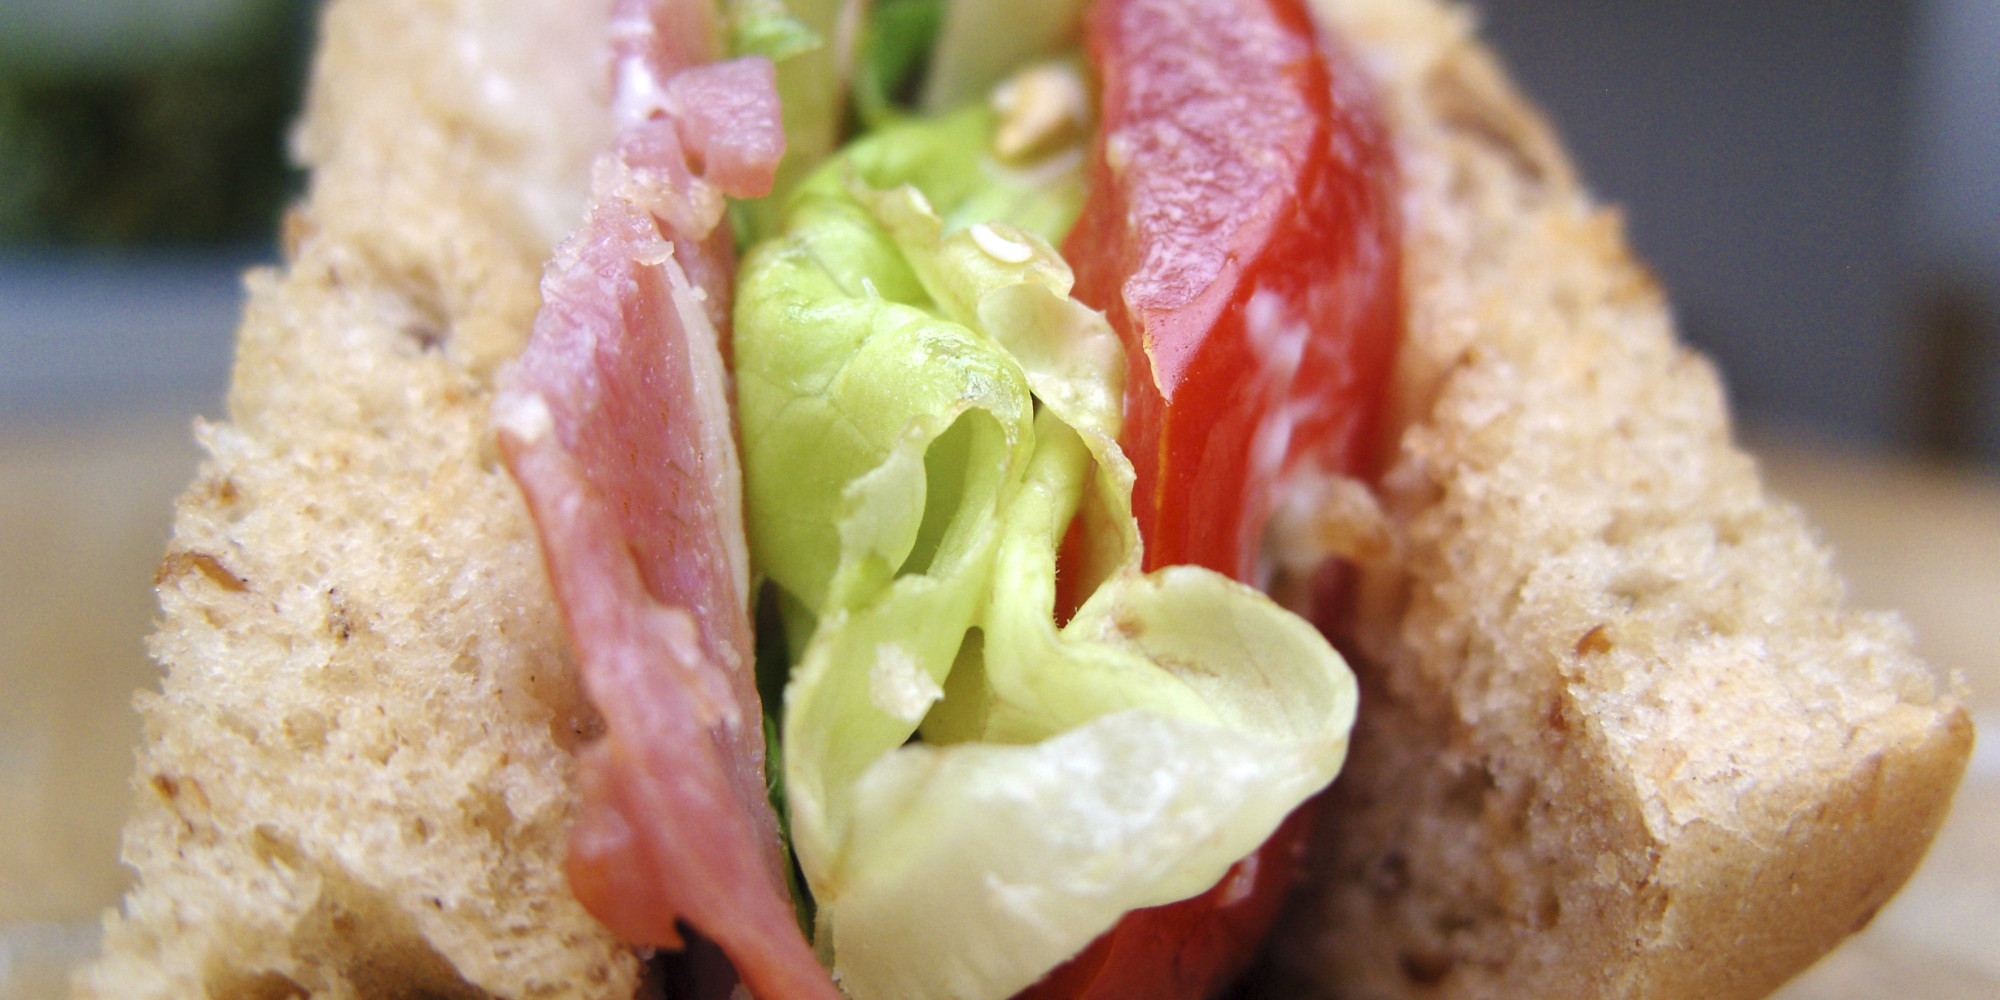 BACON-LETTUCE-AND-TOMATO-SANDWICH-facebook.jpg